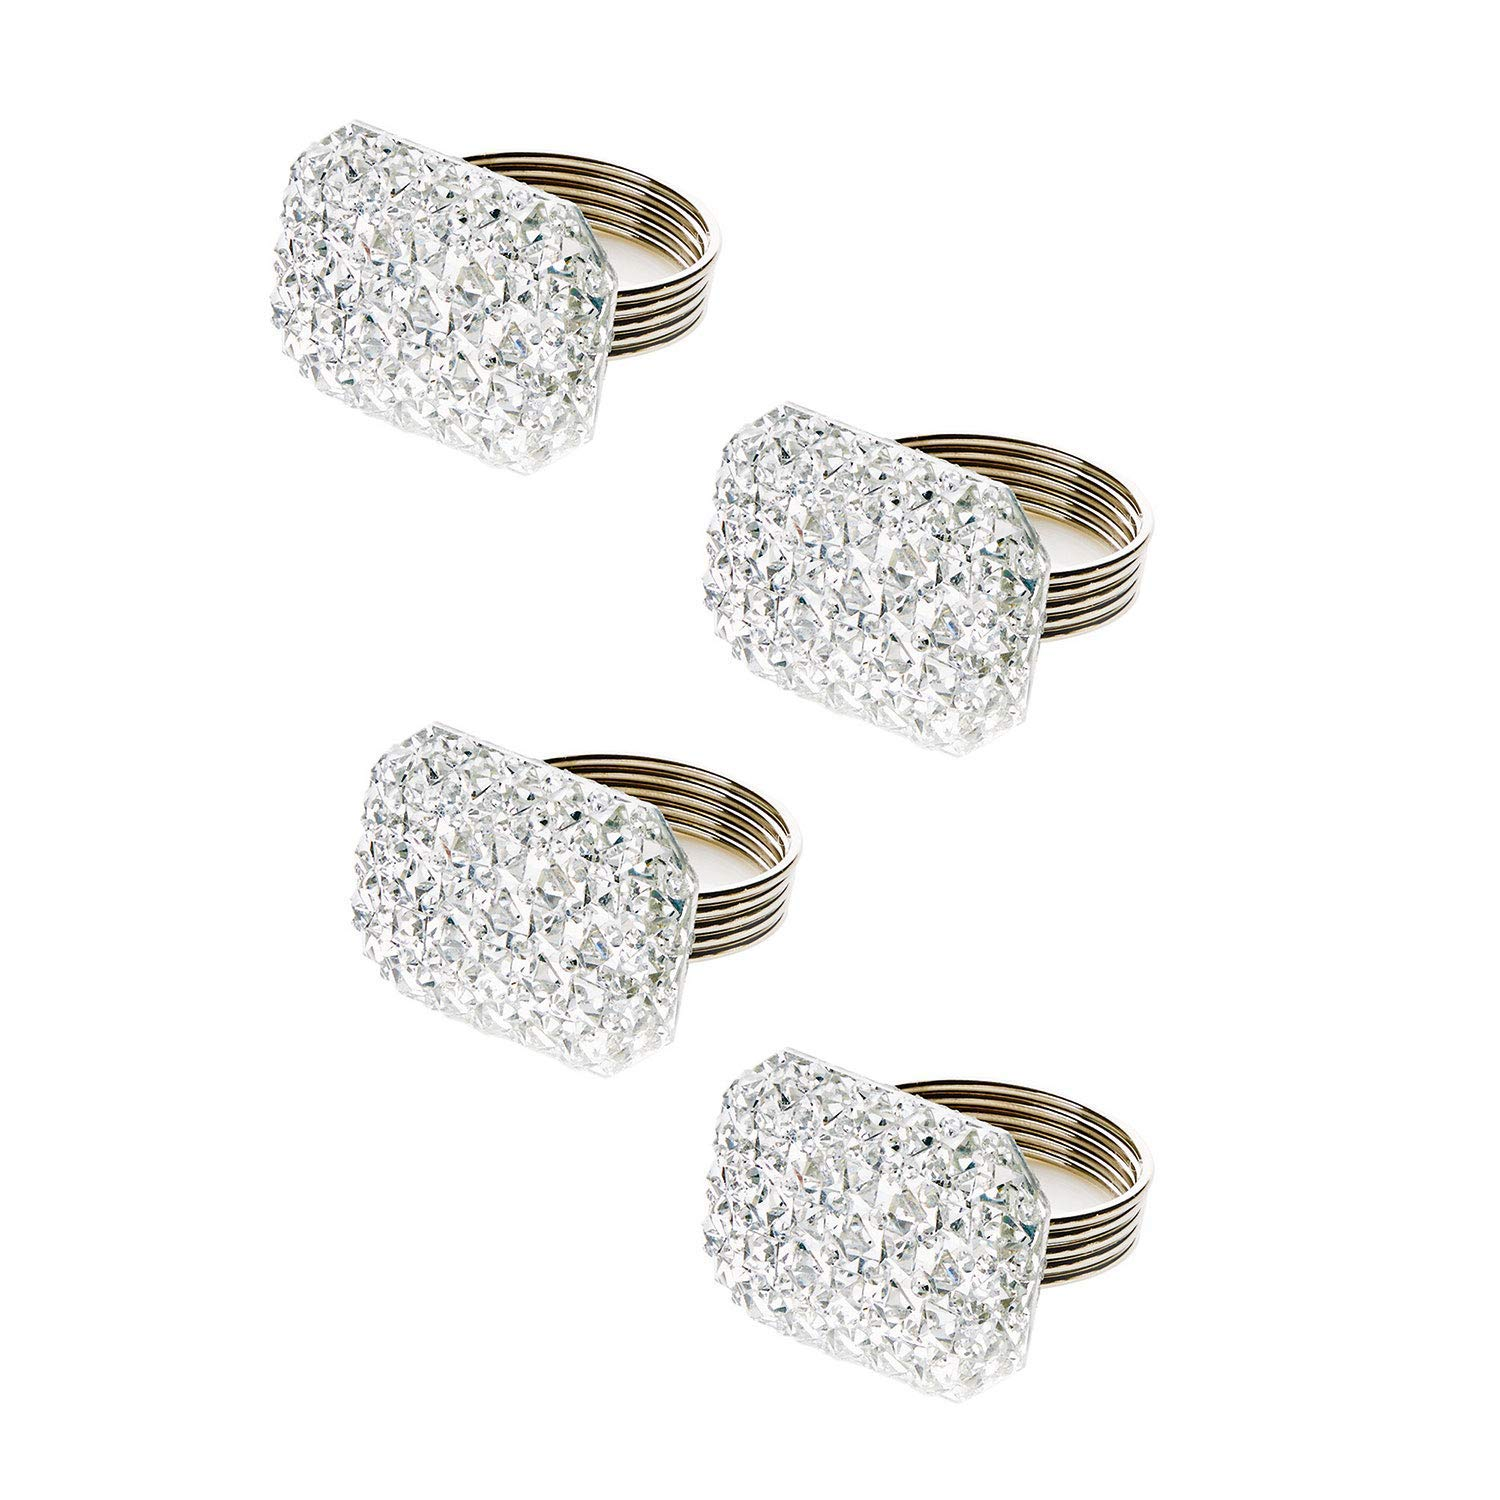 TRIXES Napkin Rings Rectangular Shape Silver with Rhinestones - Set of 4 – Perfect for Christmas Table Placement XMS155